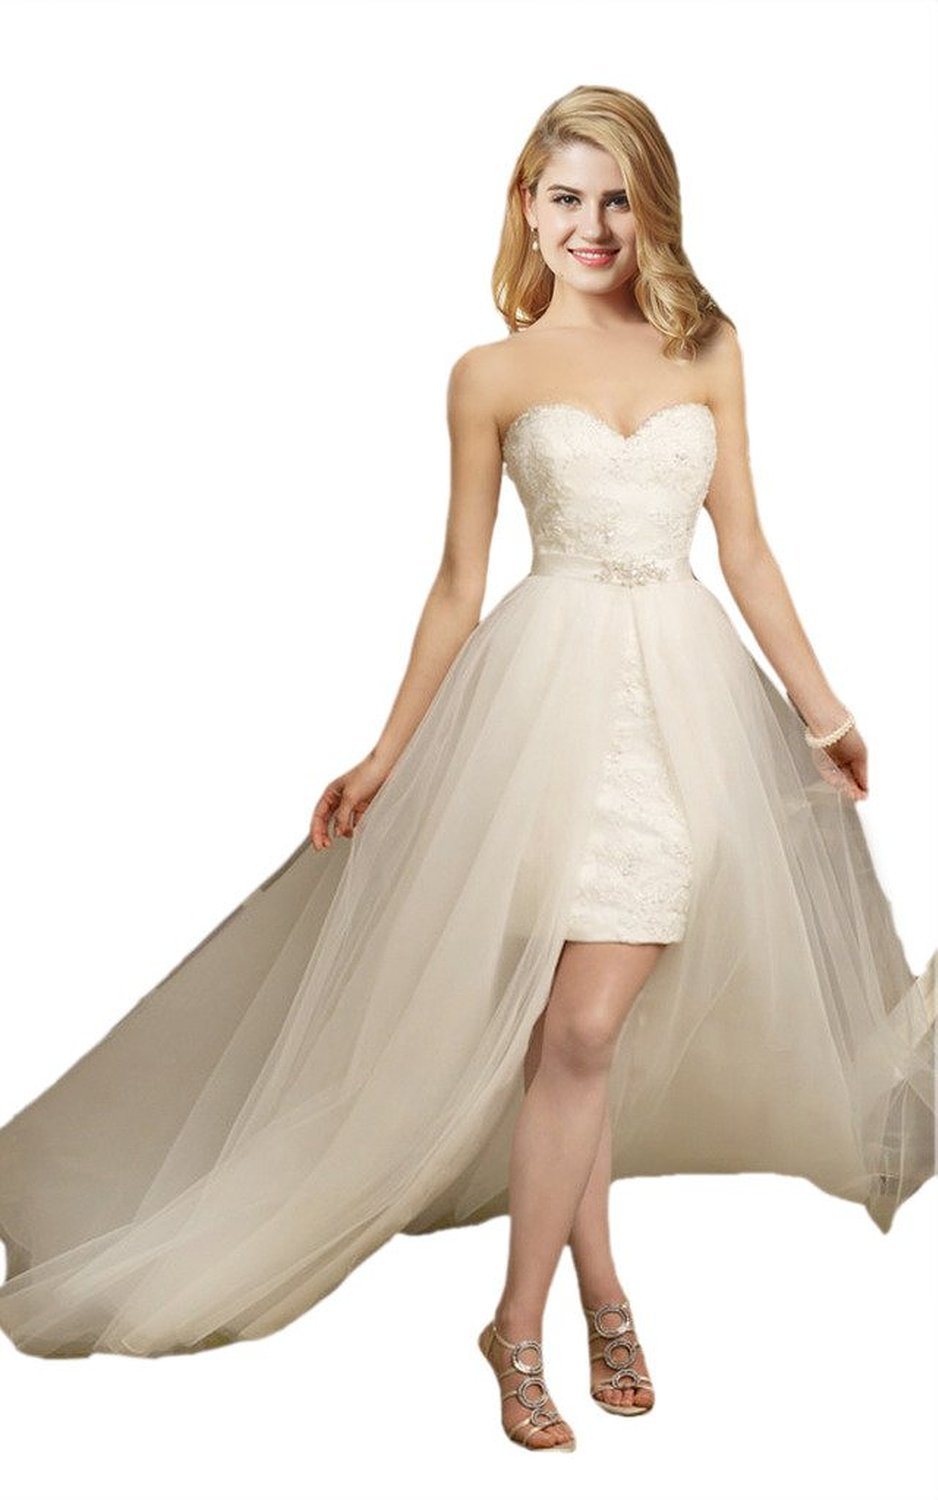 Fanciest Women's Short Lace Wedding Dresses with Tulle Detachable Skirt White US6